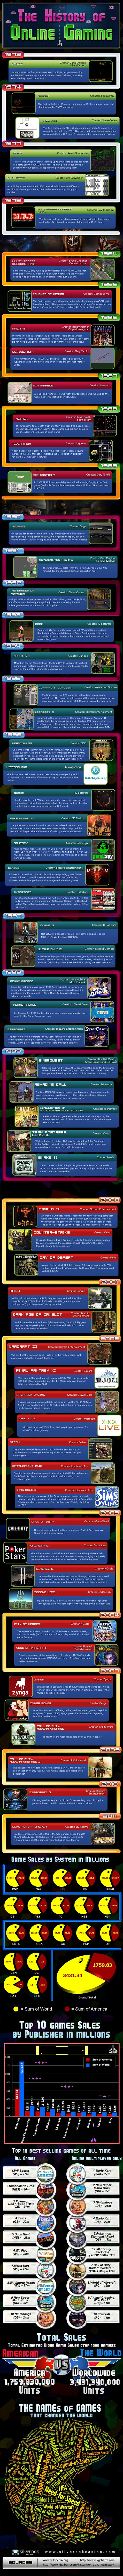 Online Gaming Infographic – A Graphic, Visual History